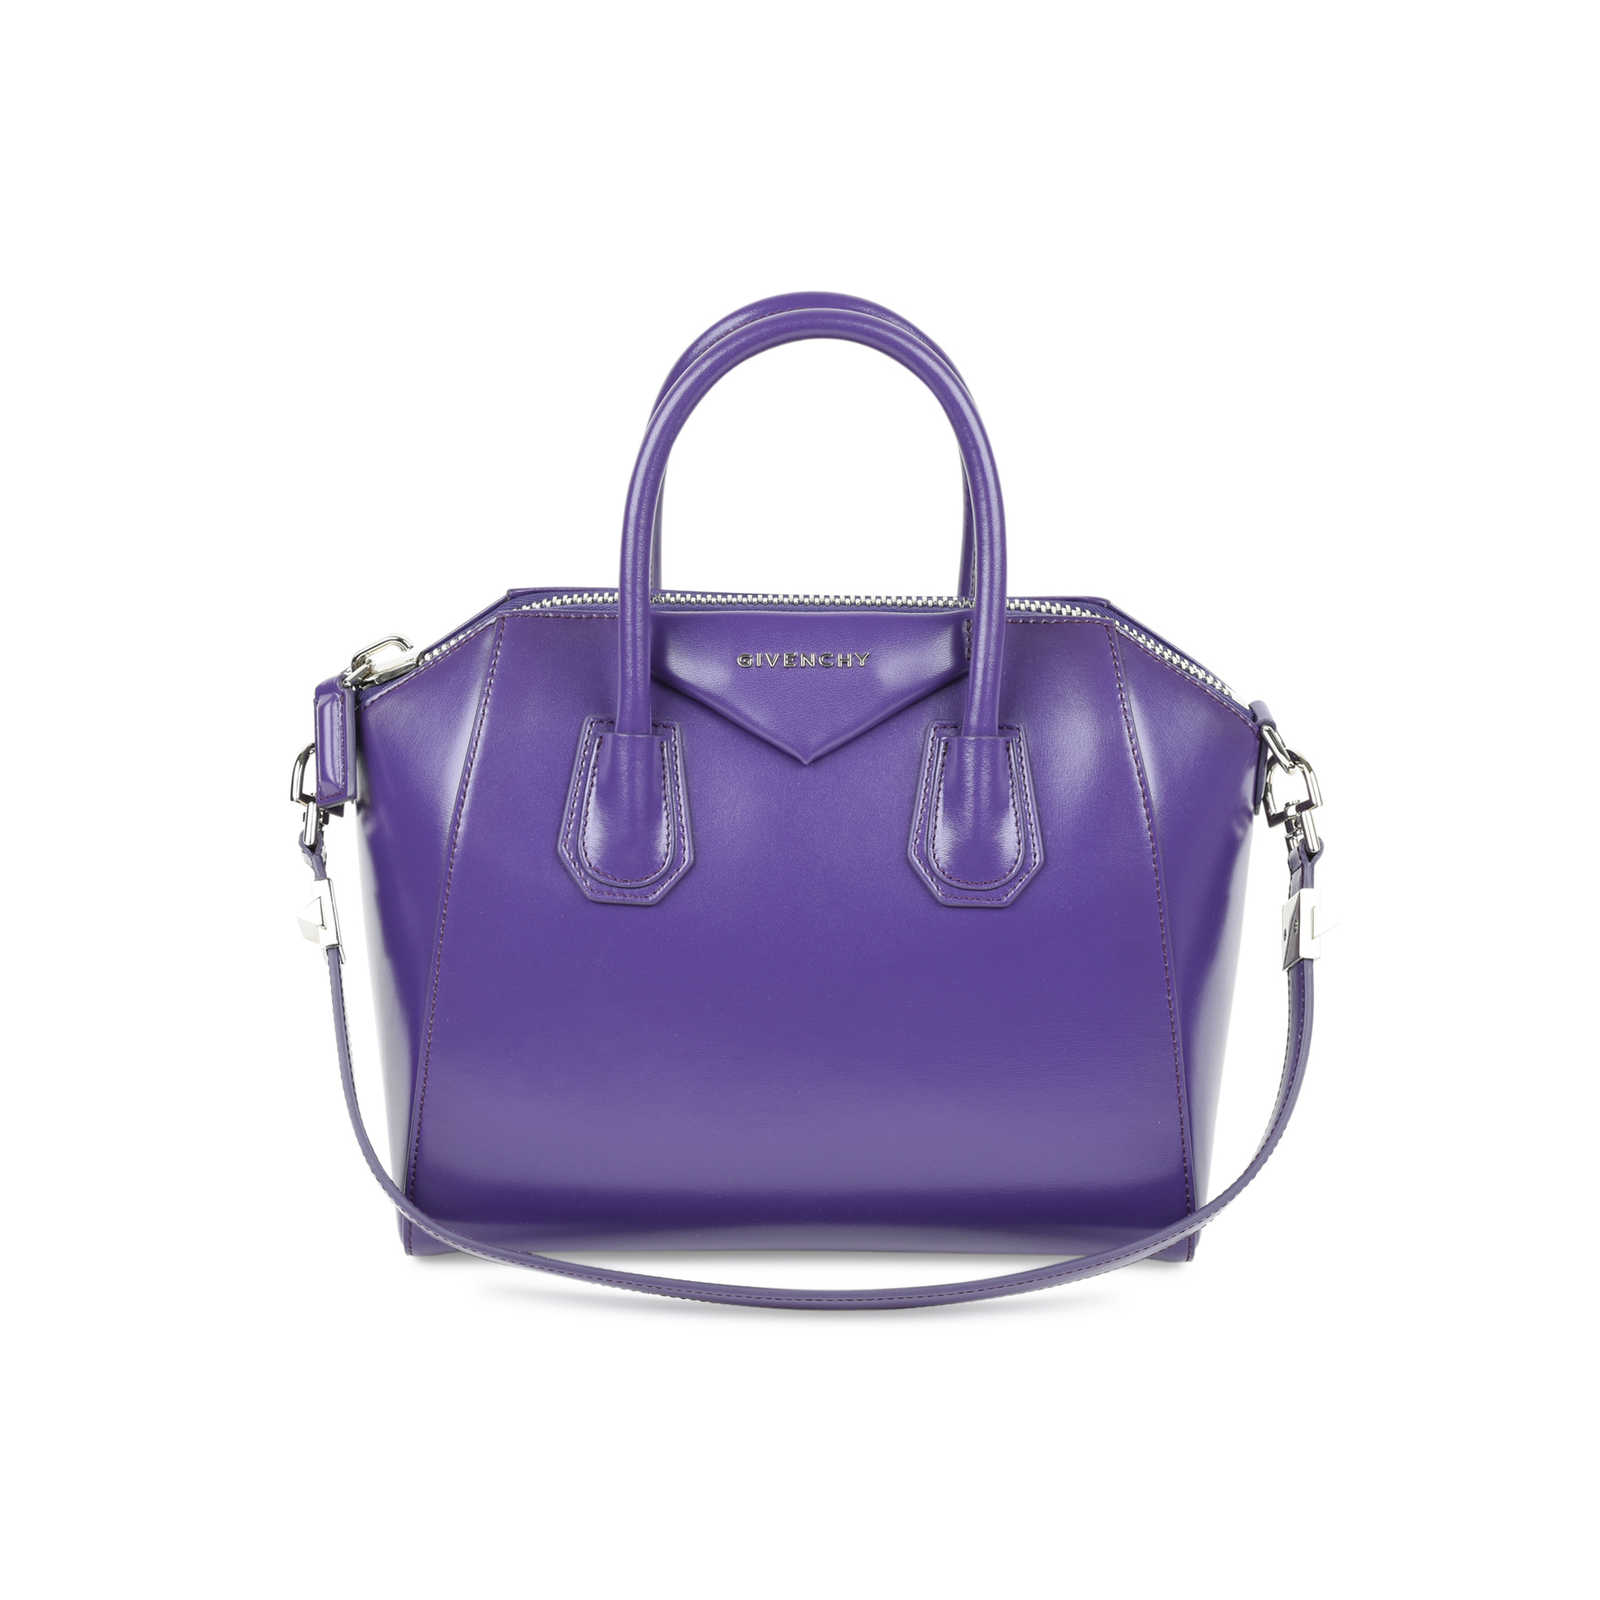 fc606d20a3f94 Authentic Second Hand Givenchy Small Antigona Bag (PSS-034-00017) -  Thumbnail ...